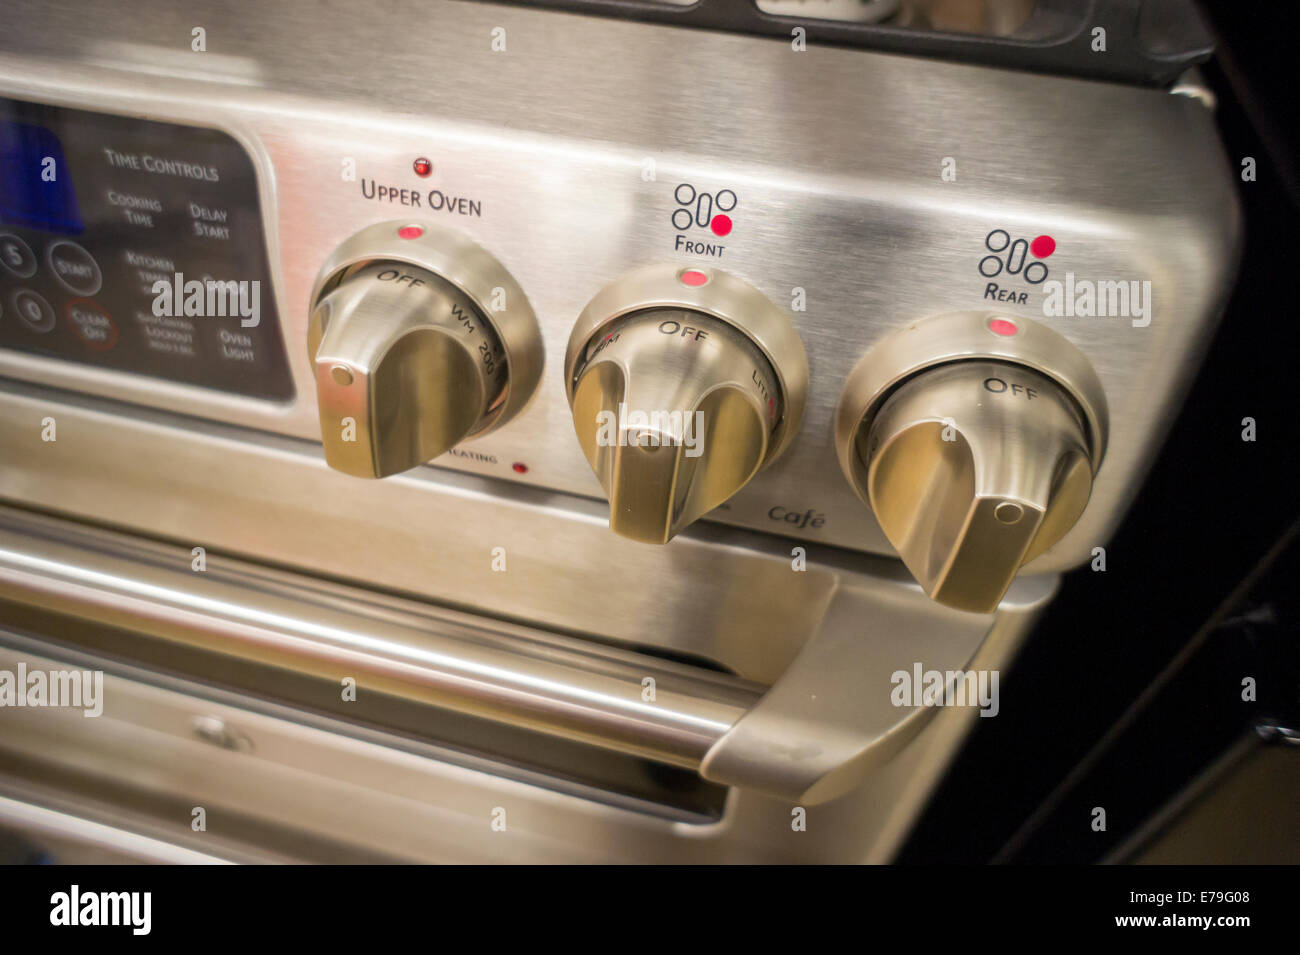 A General Electric gas stove in a Home Depot in New York Stock Photo